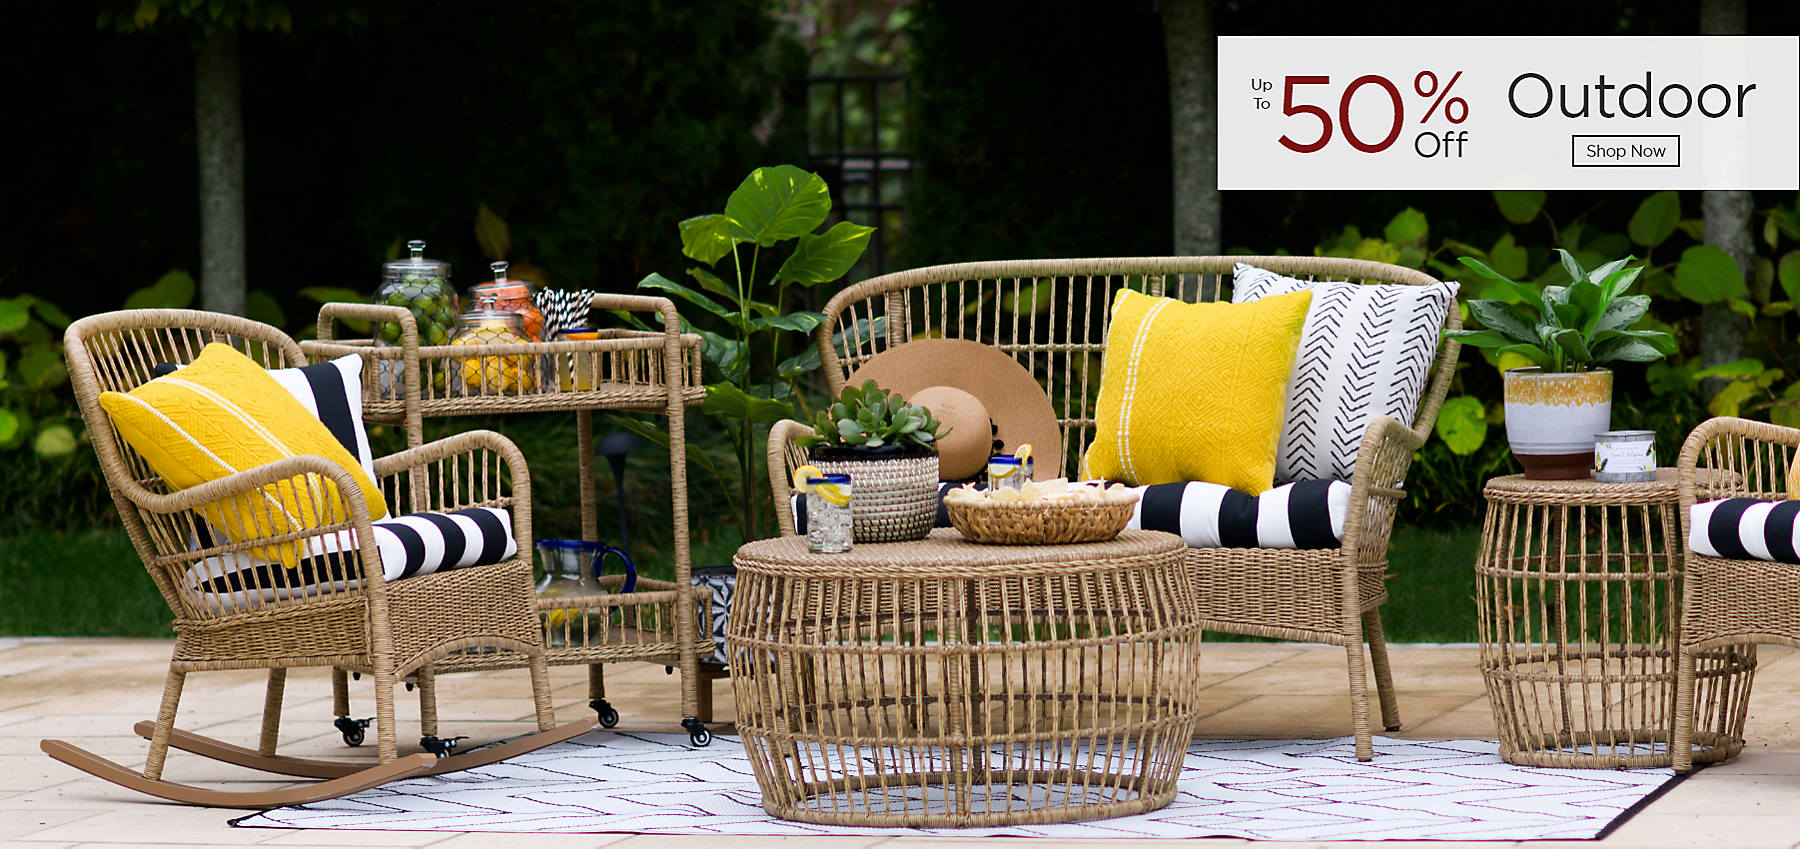 Outdoor Up to 50% Off